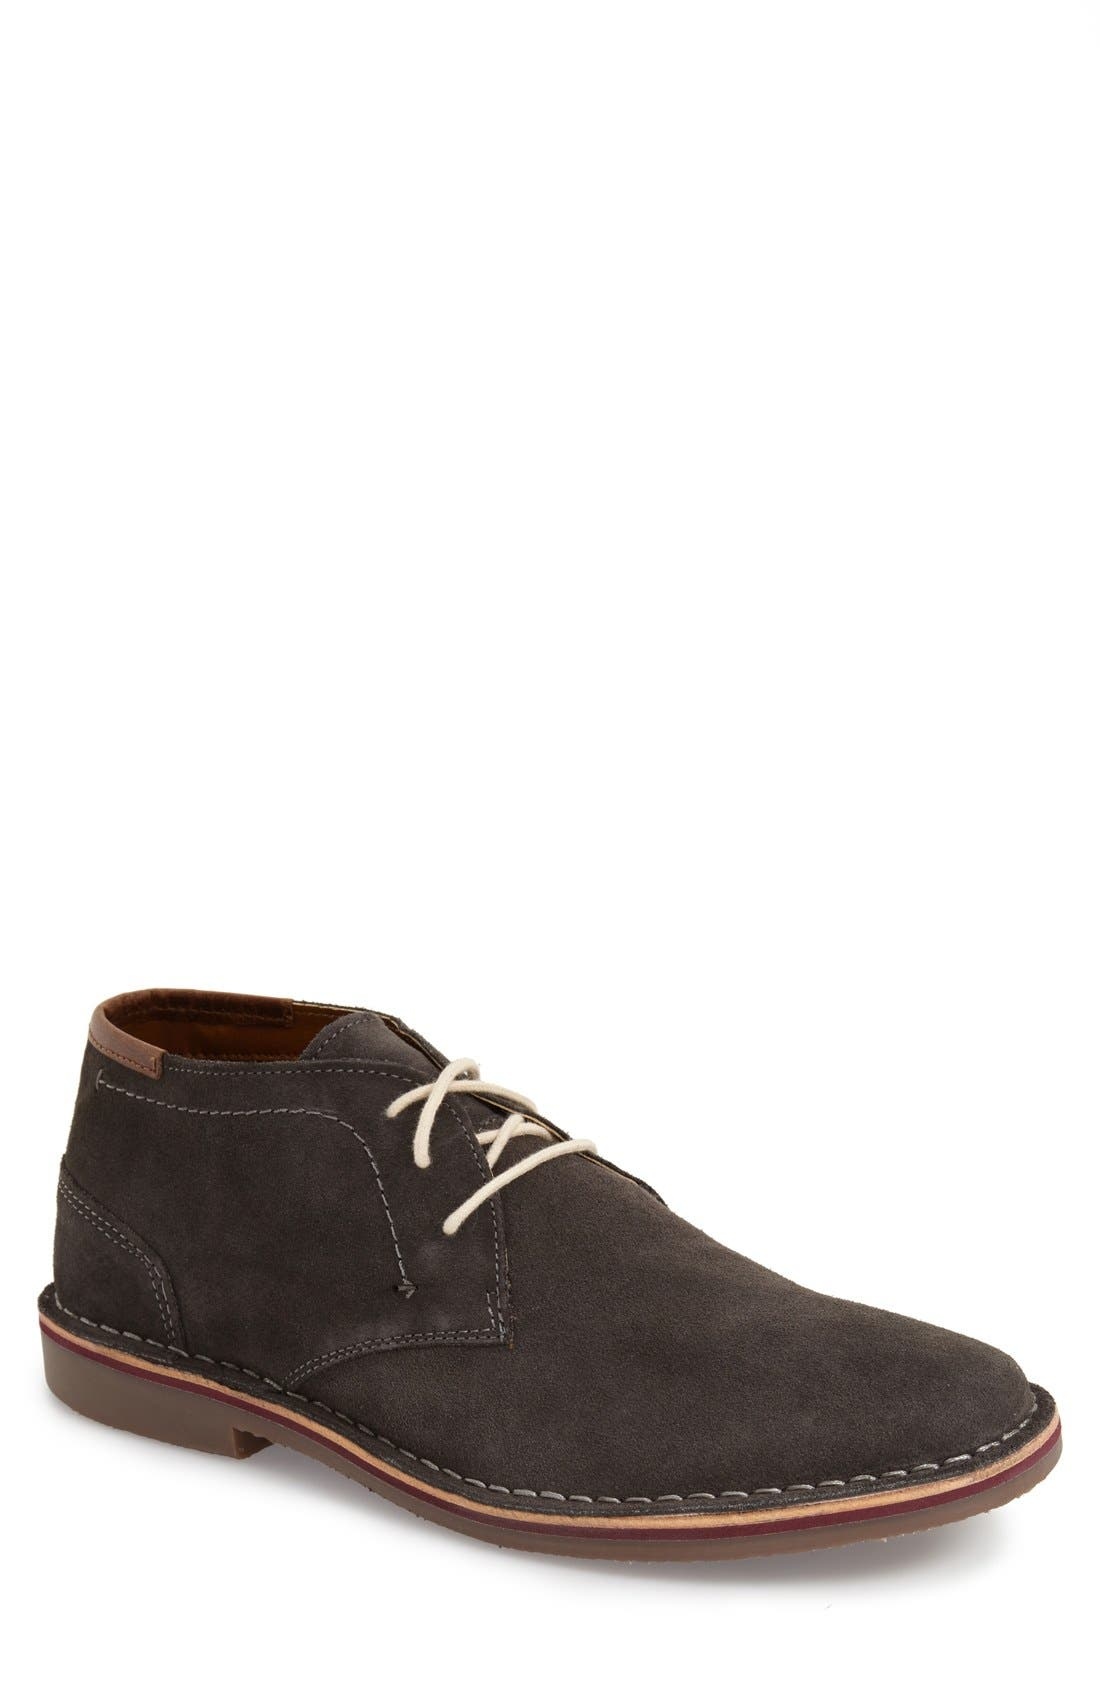 'Desert Sun' Chukka Boot,                         Main,                         color, DARK GREY SUEDE